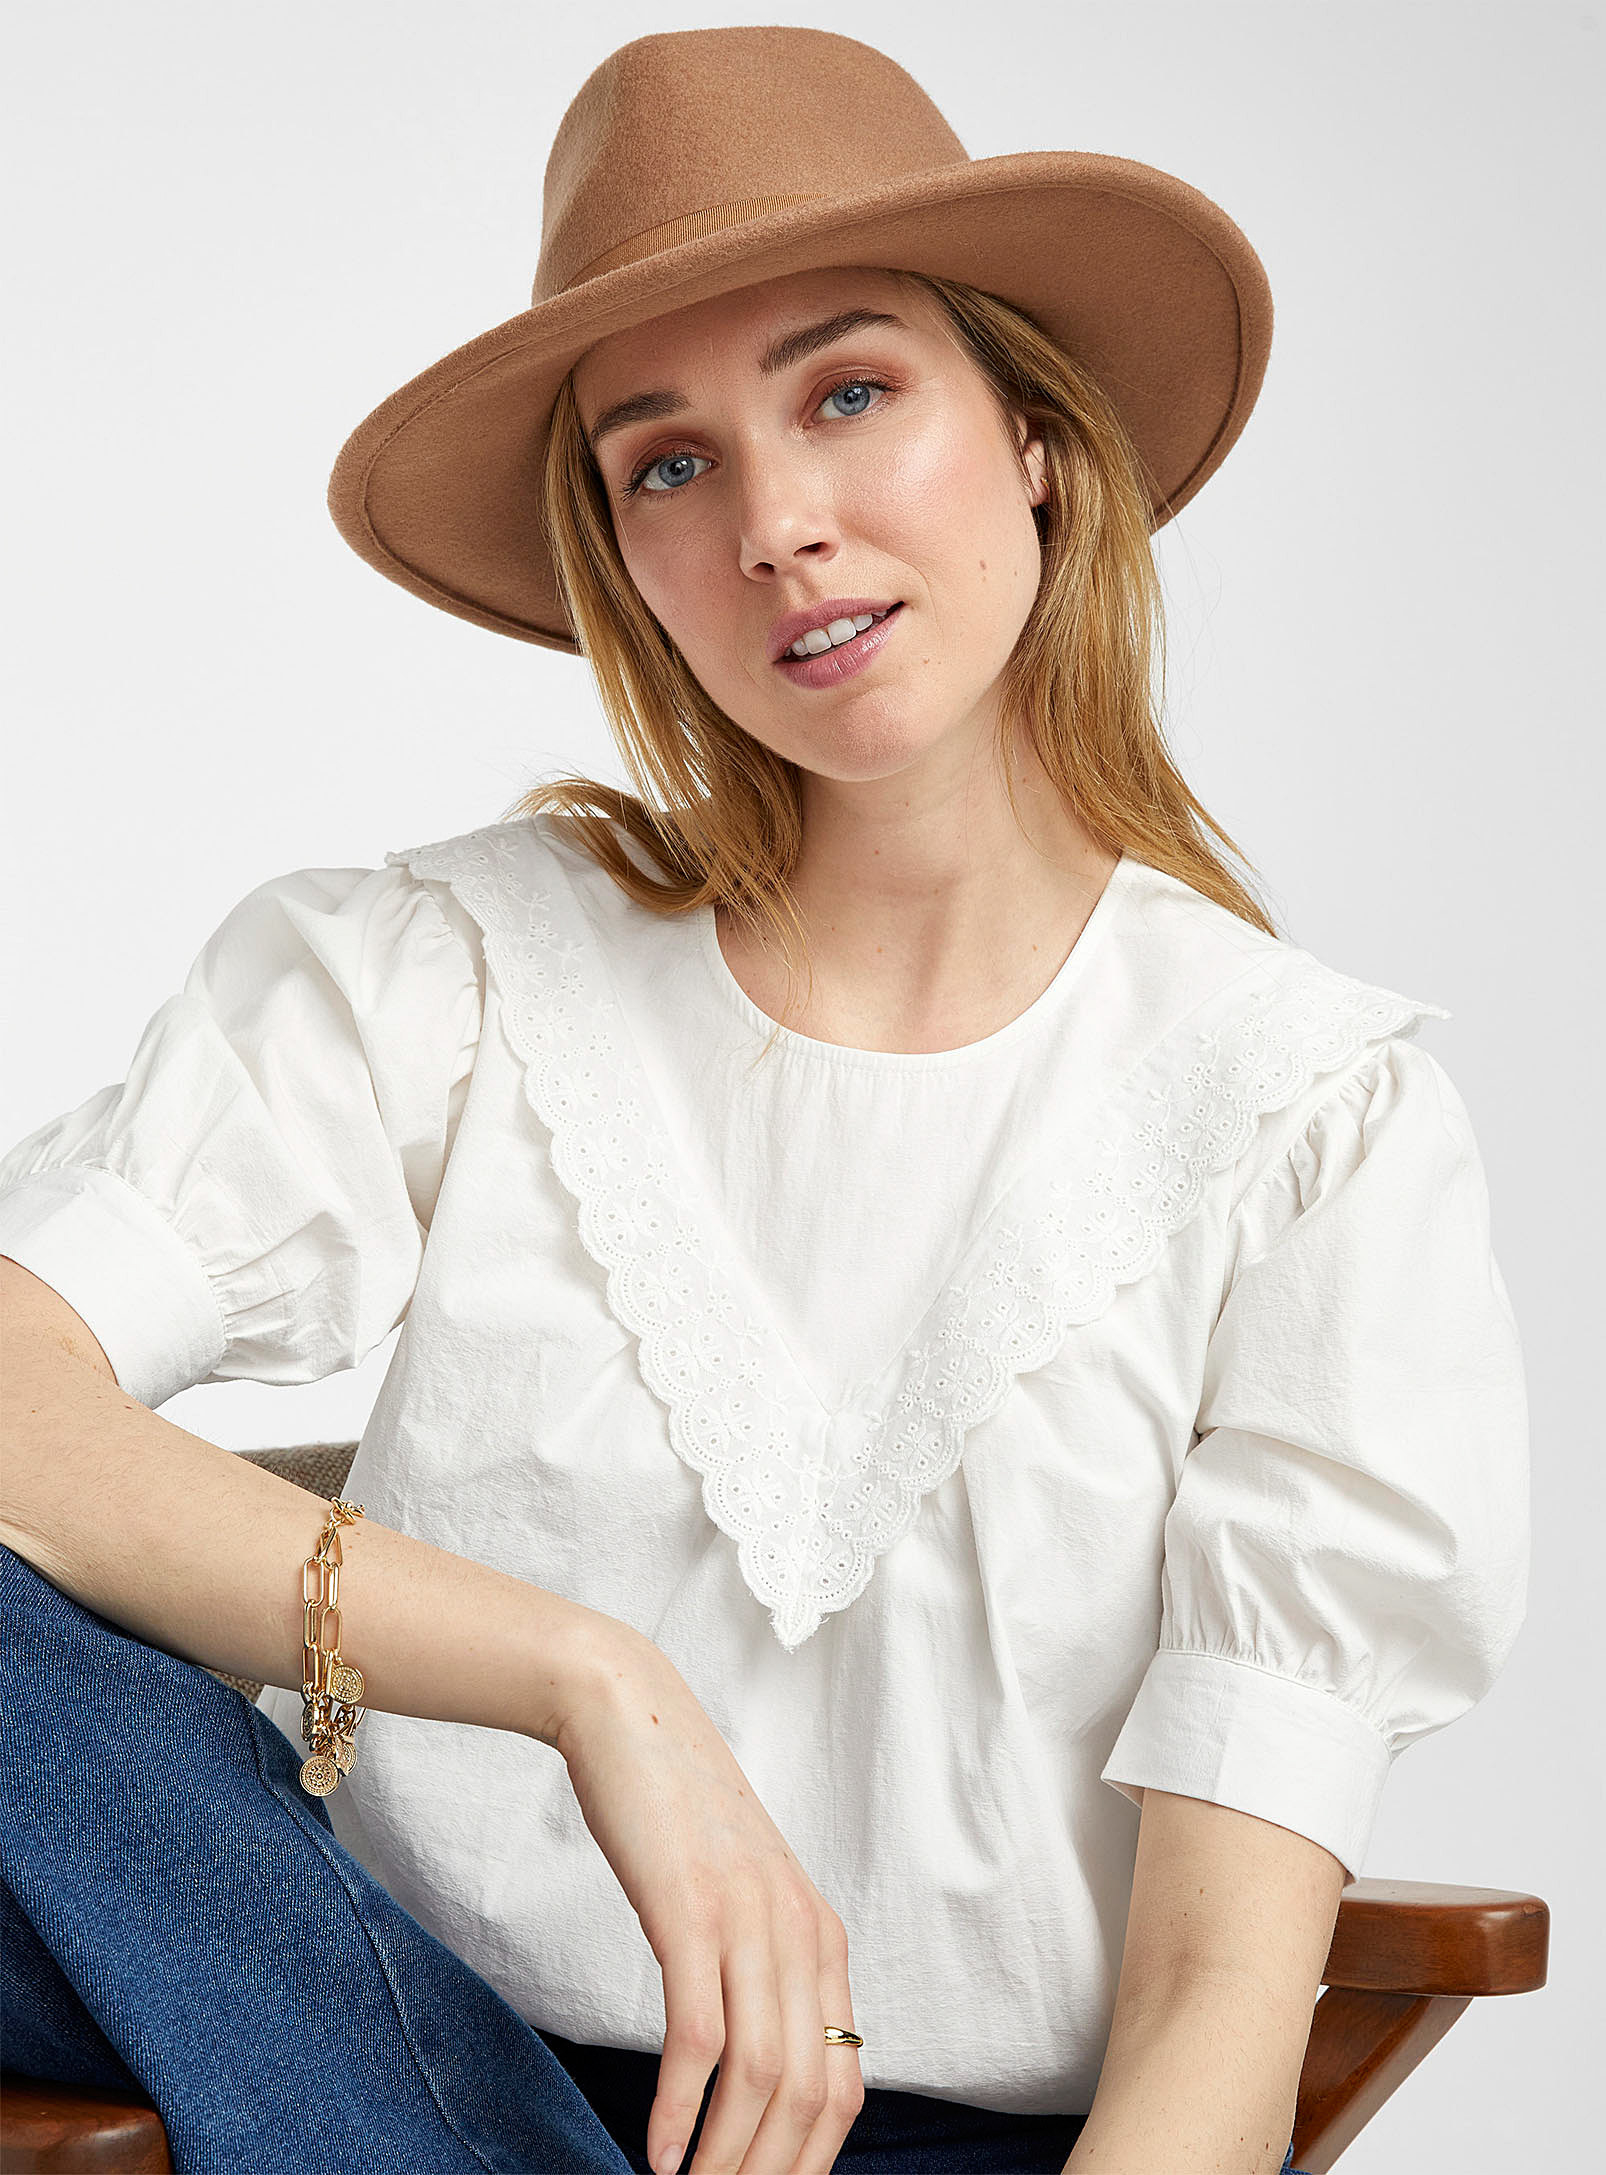 A person wearing a blouse with jeans